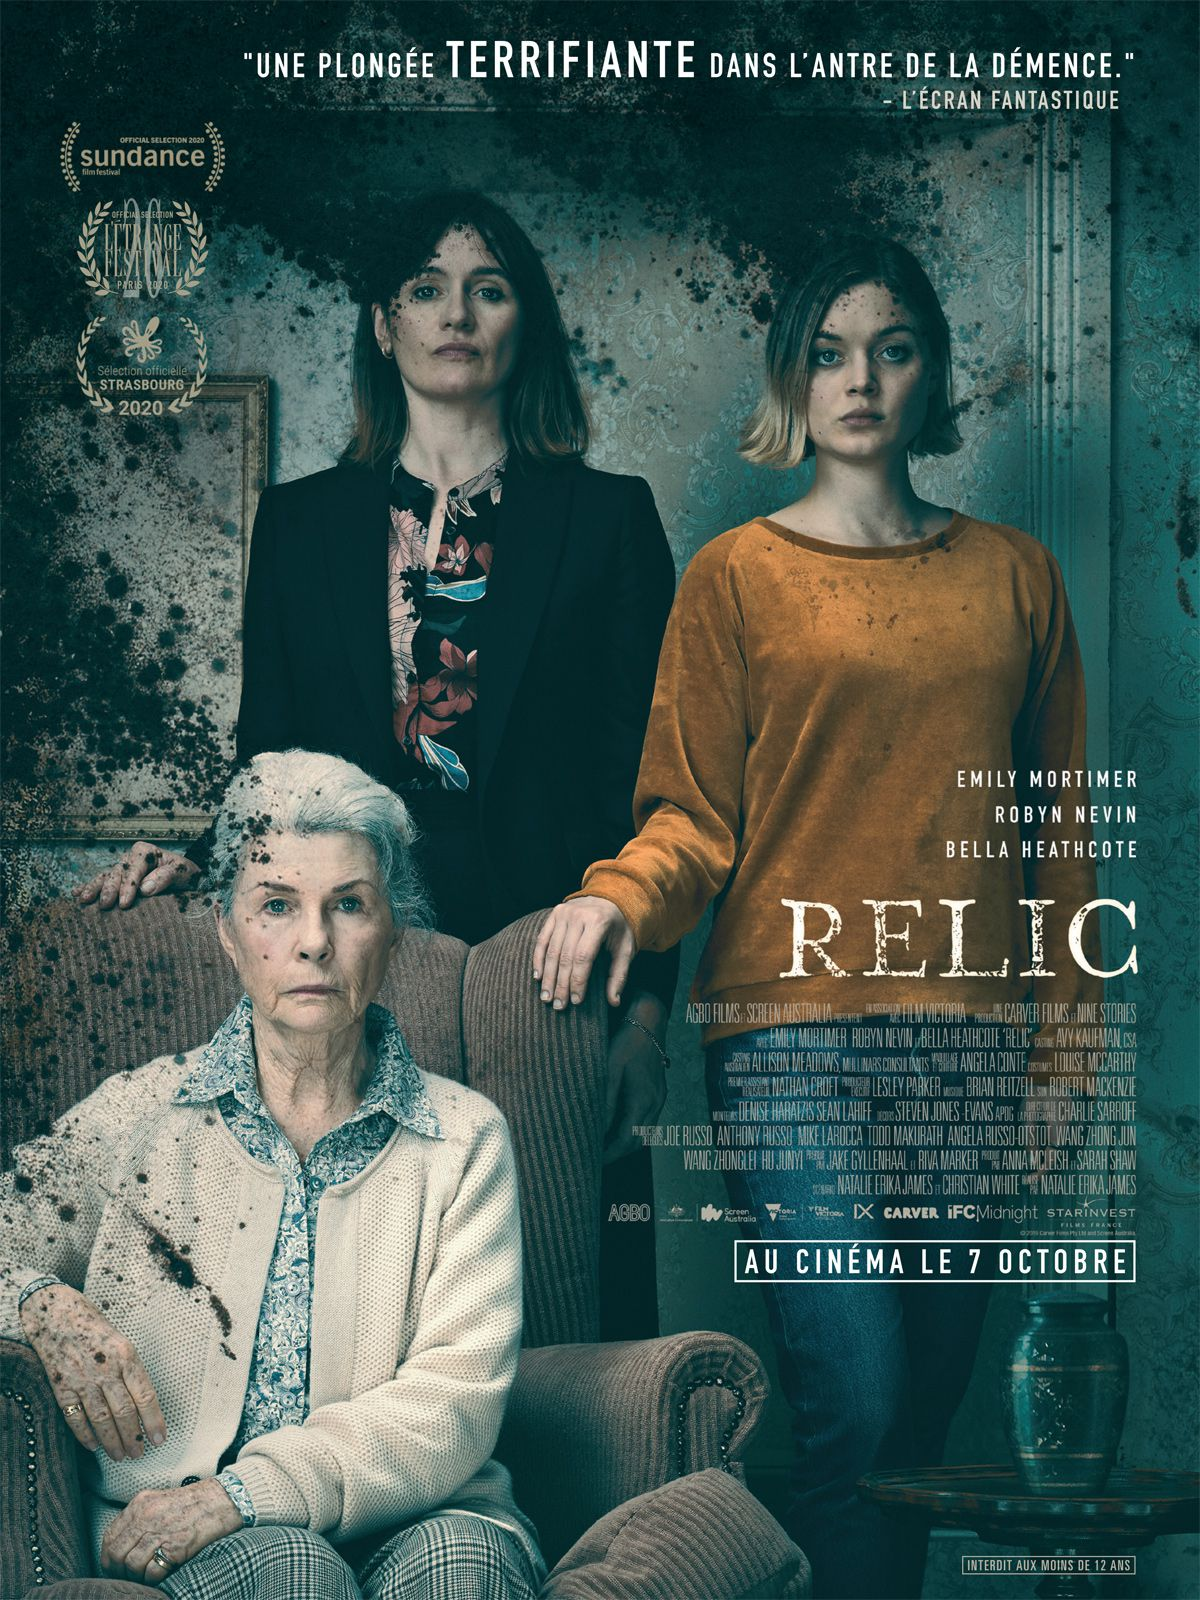 Relic - Film (2020) streaming VF gratuit complet